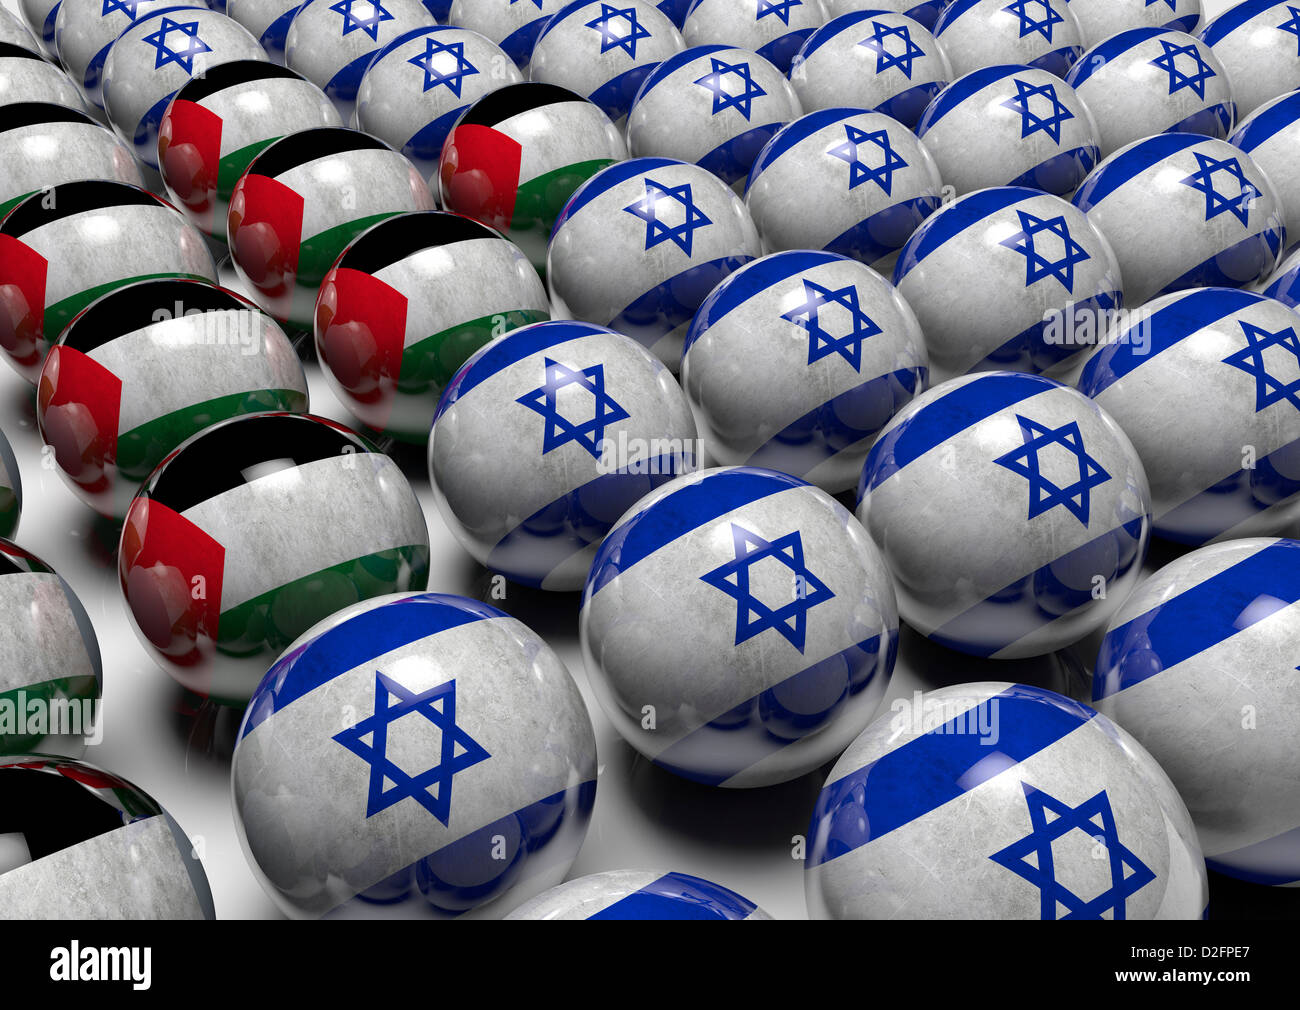 Concept image highlighting the balance of power between Israel and Palestine - Stock Image